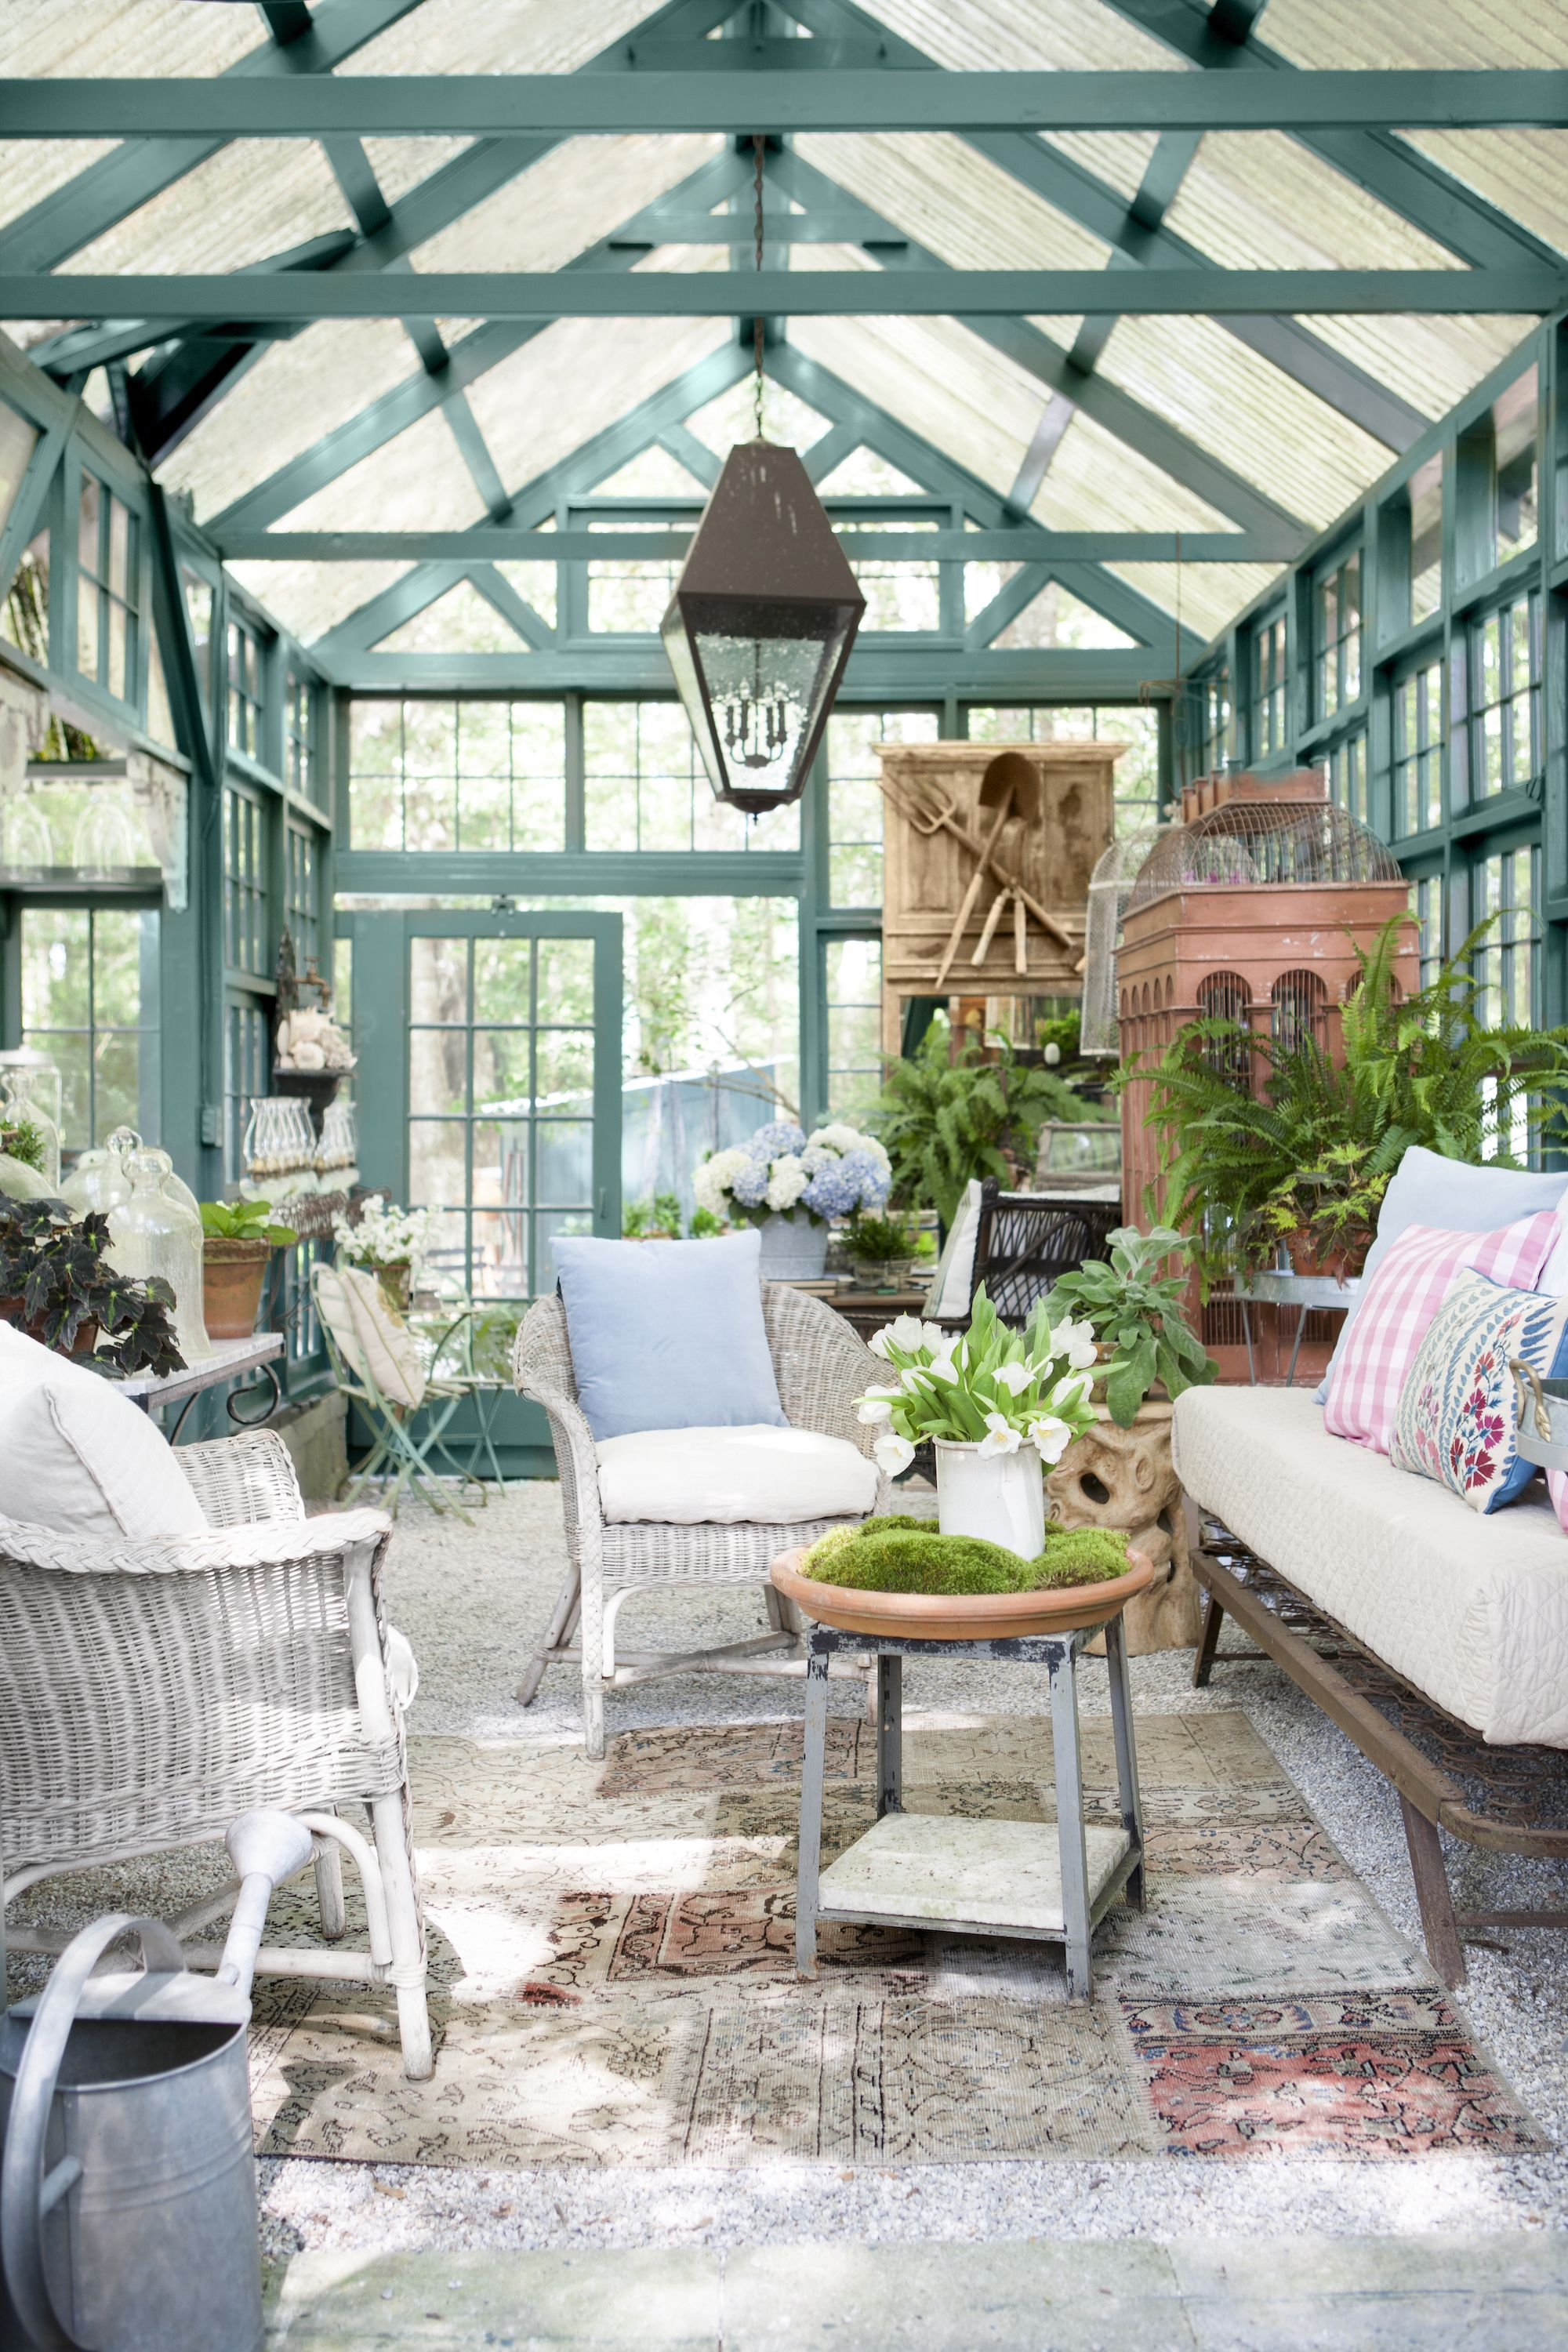 25 Sunroom Decorating Ideas - Best Designs for Sun Rooms